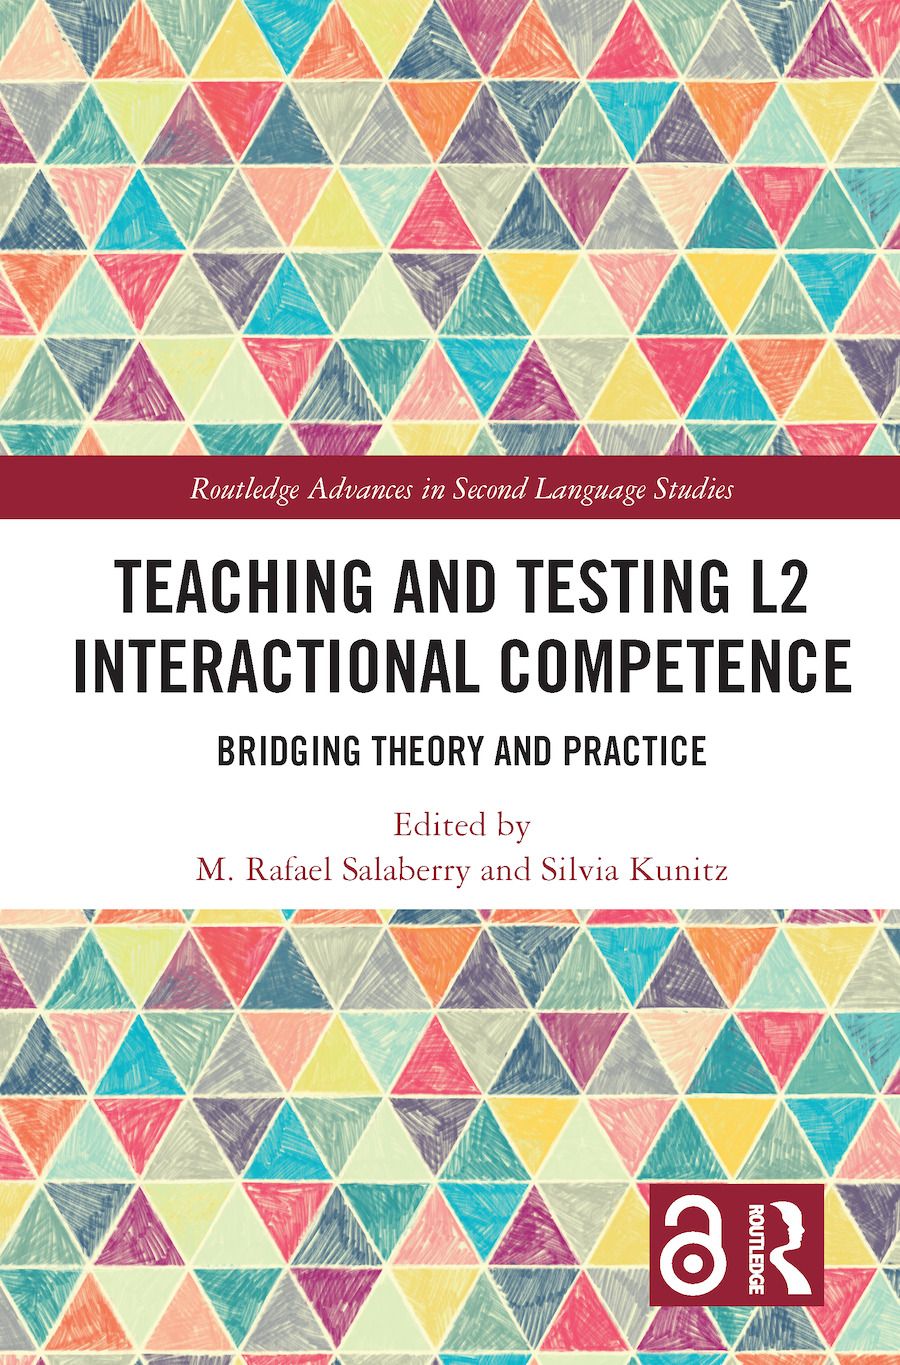 Teaching and Testing L2 Interactional Competence: Bridging Theory and Practice book cover